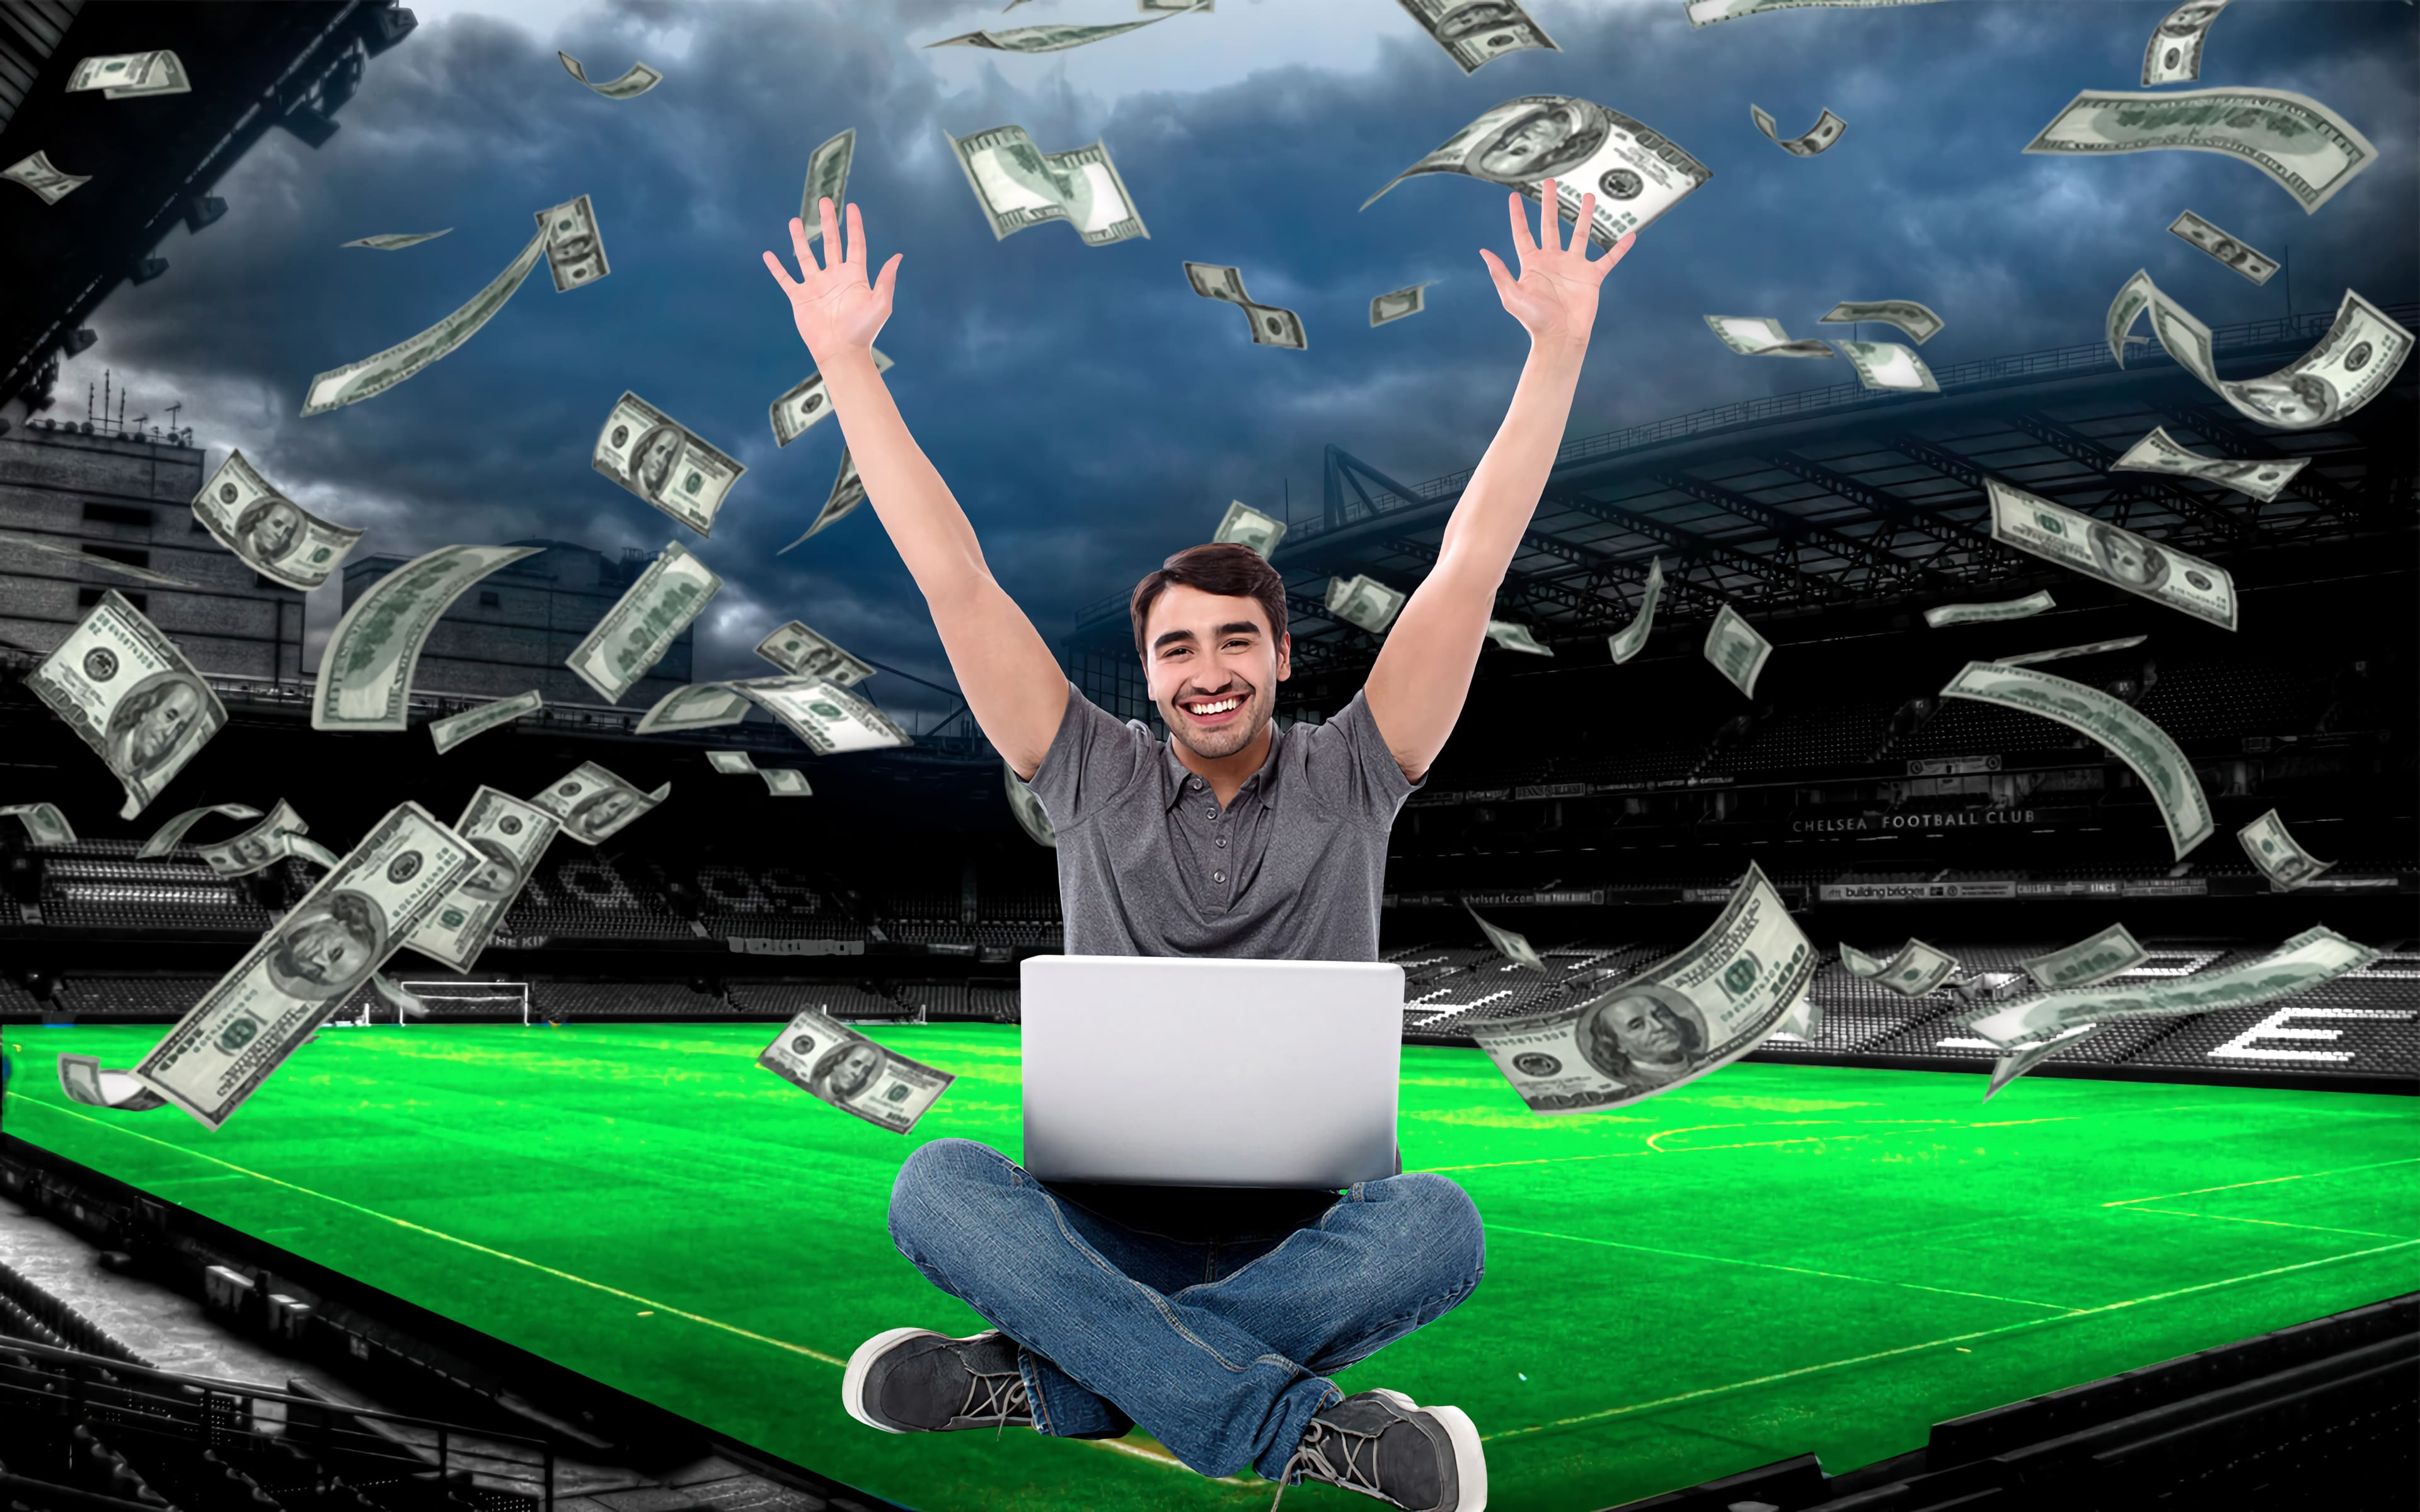 Big chance and win with reliable bookmaker